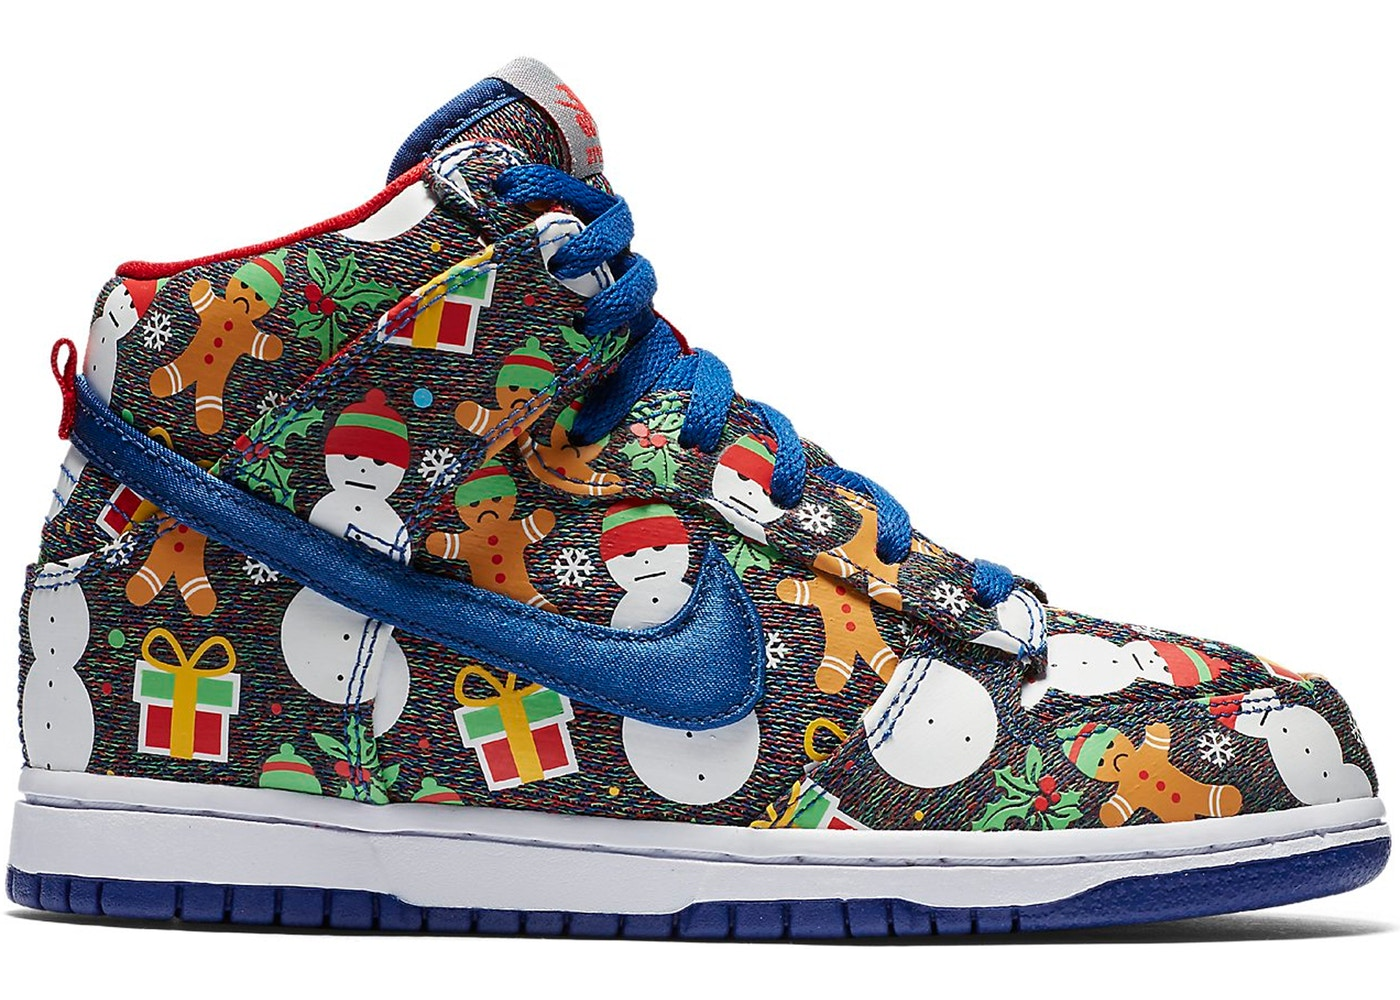 reputable site a13be 27da6 Nike SB Dunk High Concepts Ugly Christmas Sweater 2017 (PS)